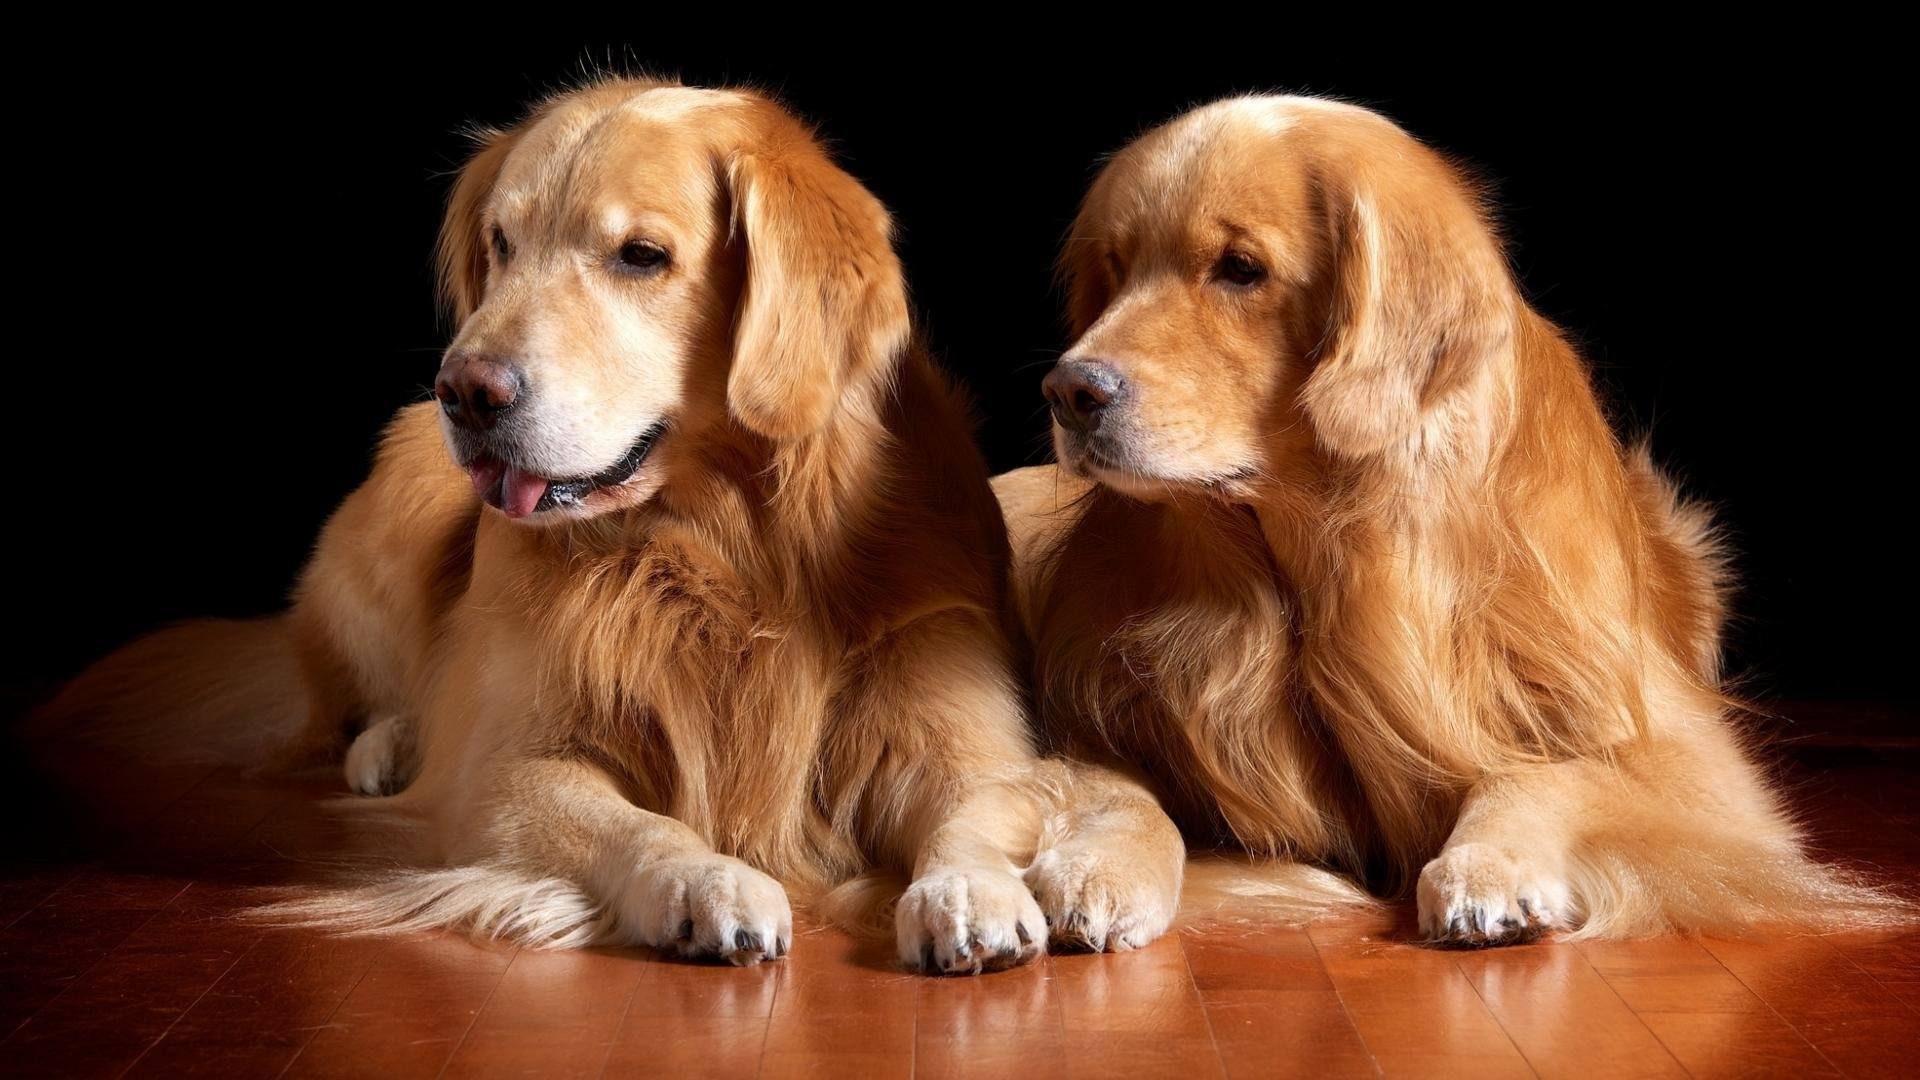 Awesome Golden Retriever free background ID:211790 for hd 1080p desktop